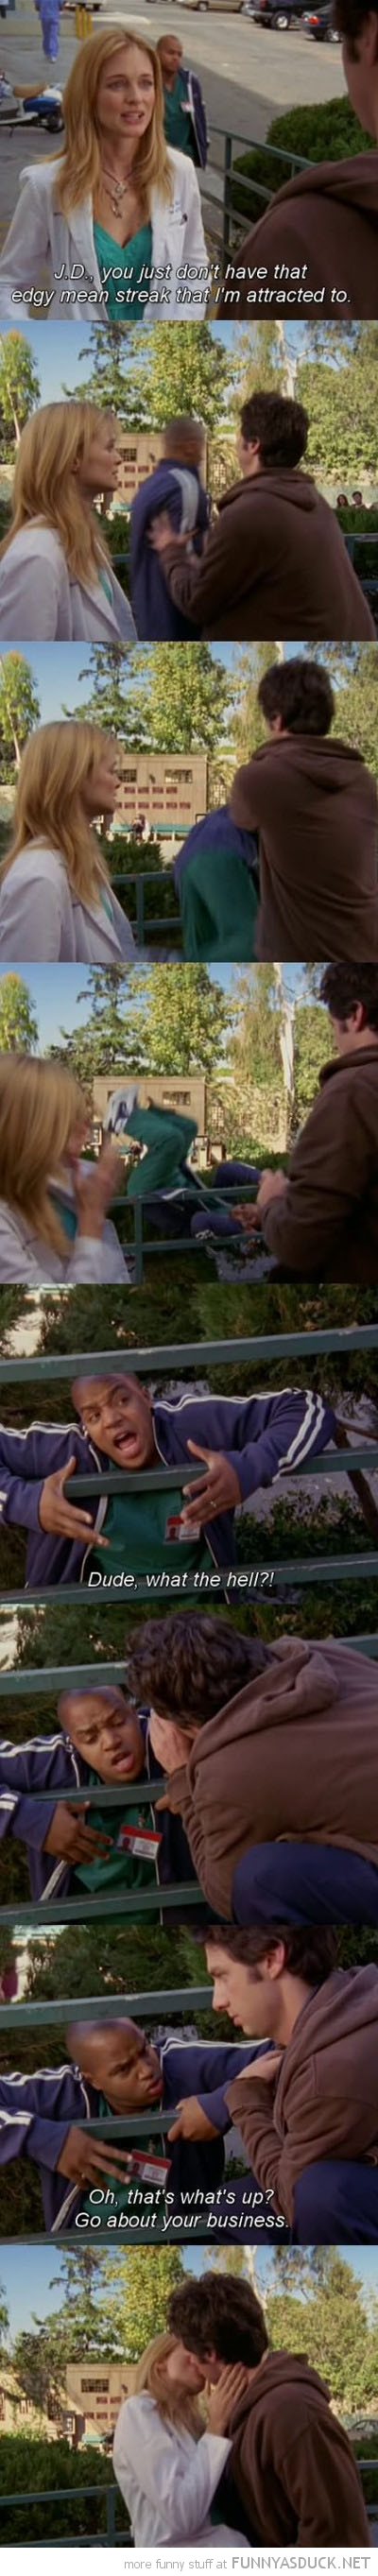 scrubs scene jd turk push over rail tv mean streak funny pics pictures pic picture image photo images photos lol